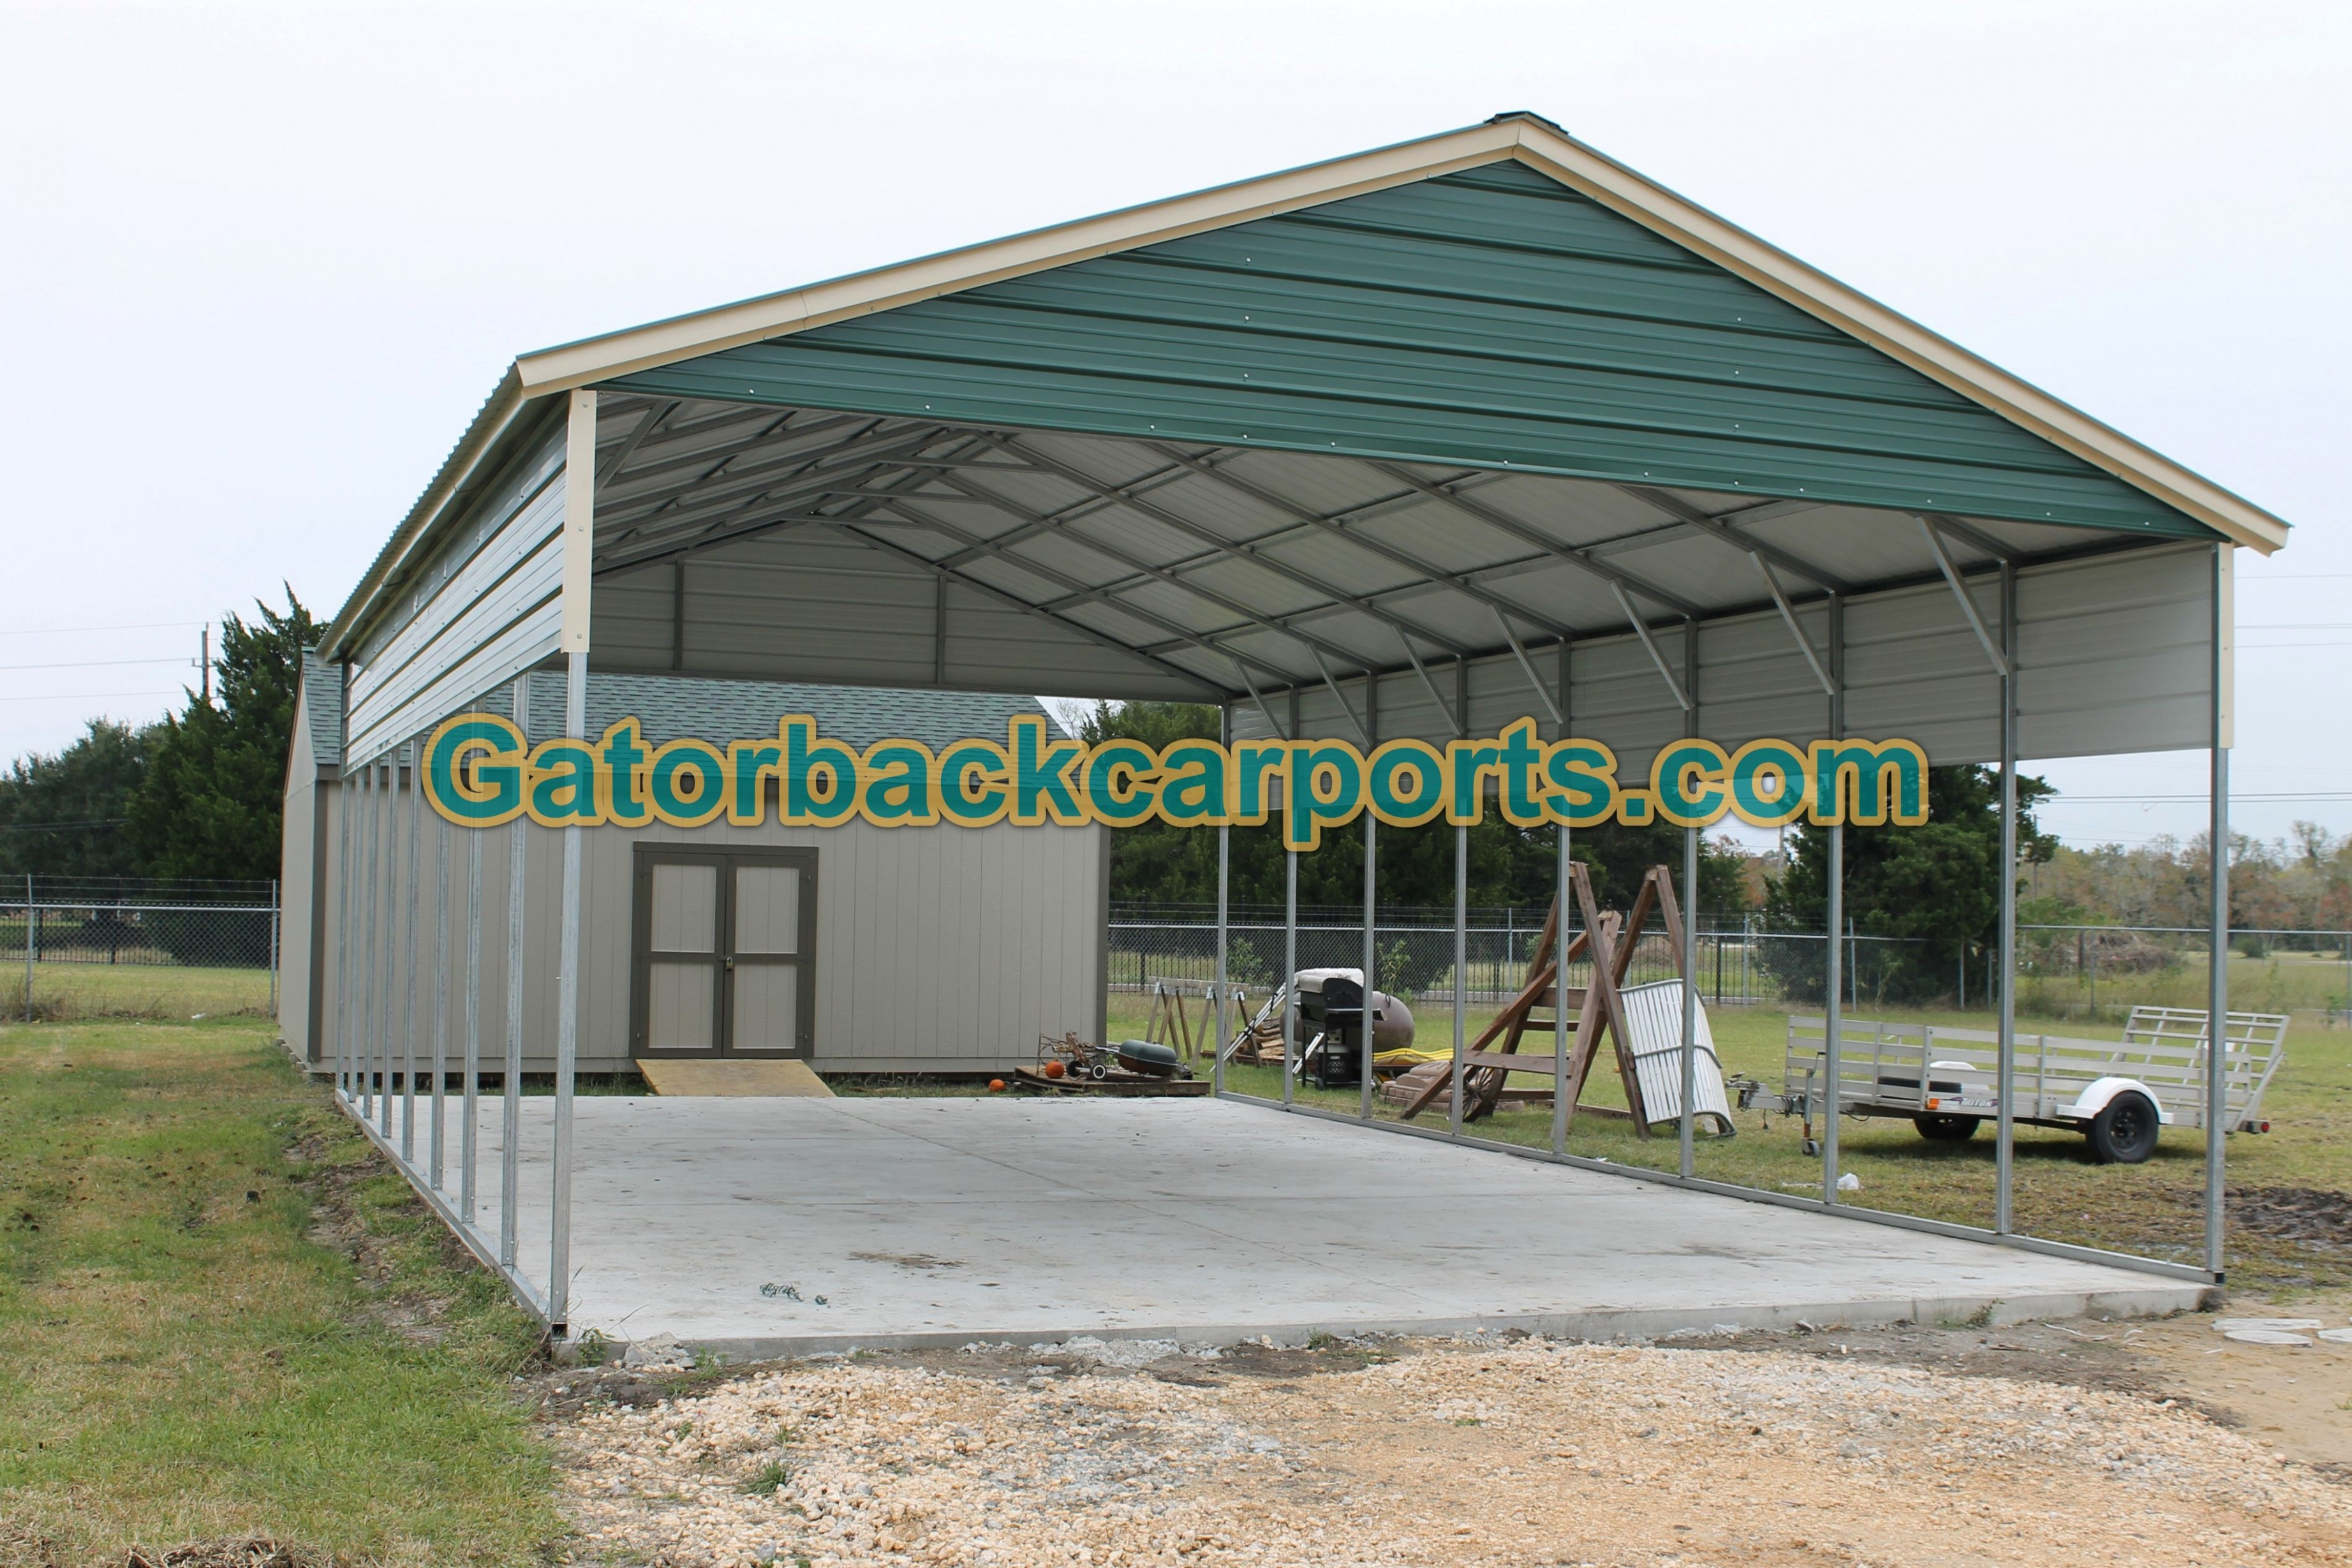 1517759746-carports-for-sale-in-texas-animewatching-com-carports-in-texas.jpg